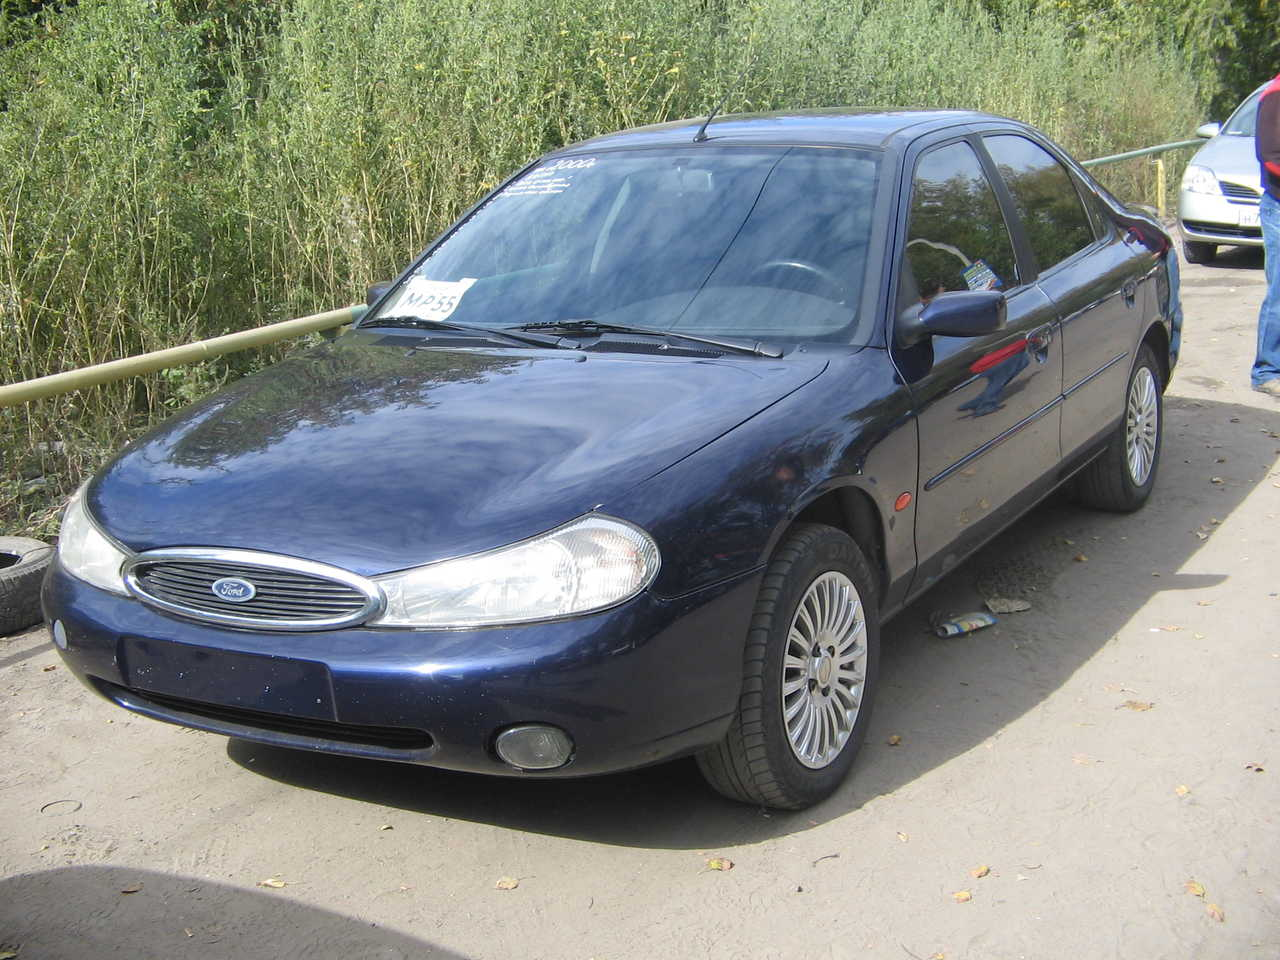 Ford Mondeo 2.0 1999 photo - 9